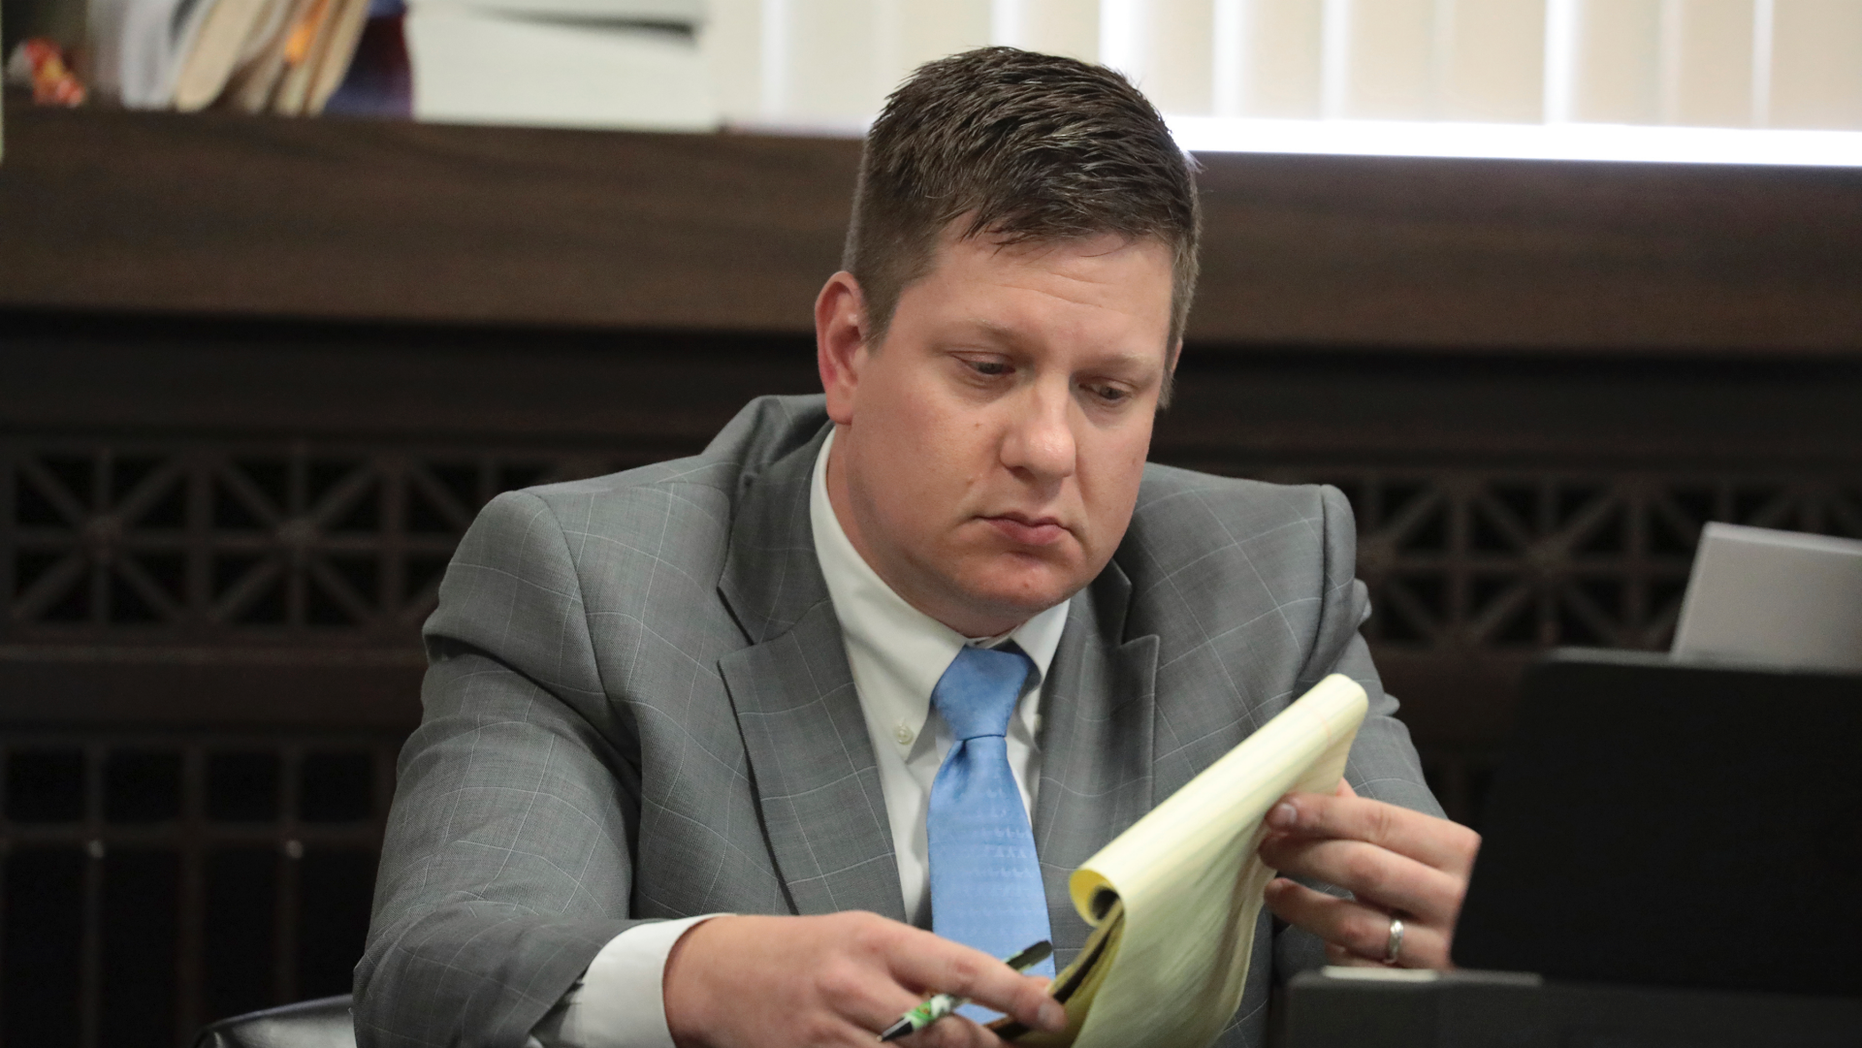 Van Dyke tearfully testifies about shooting but grapples with inconsistencies